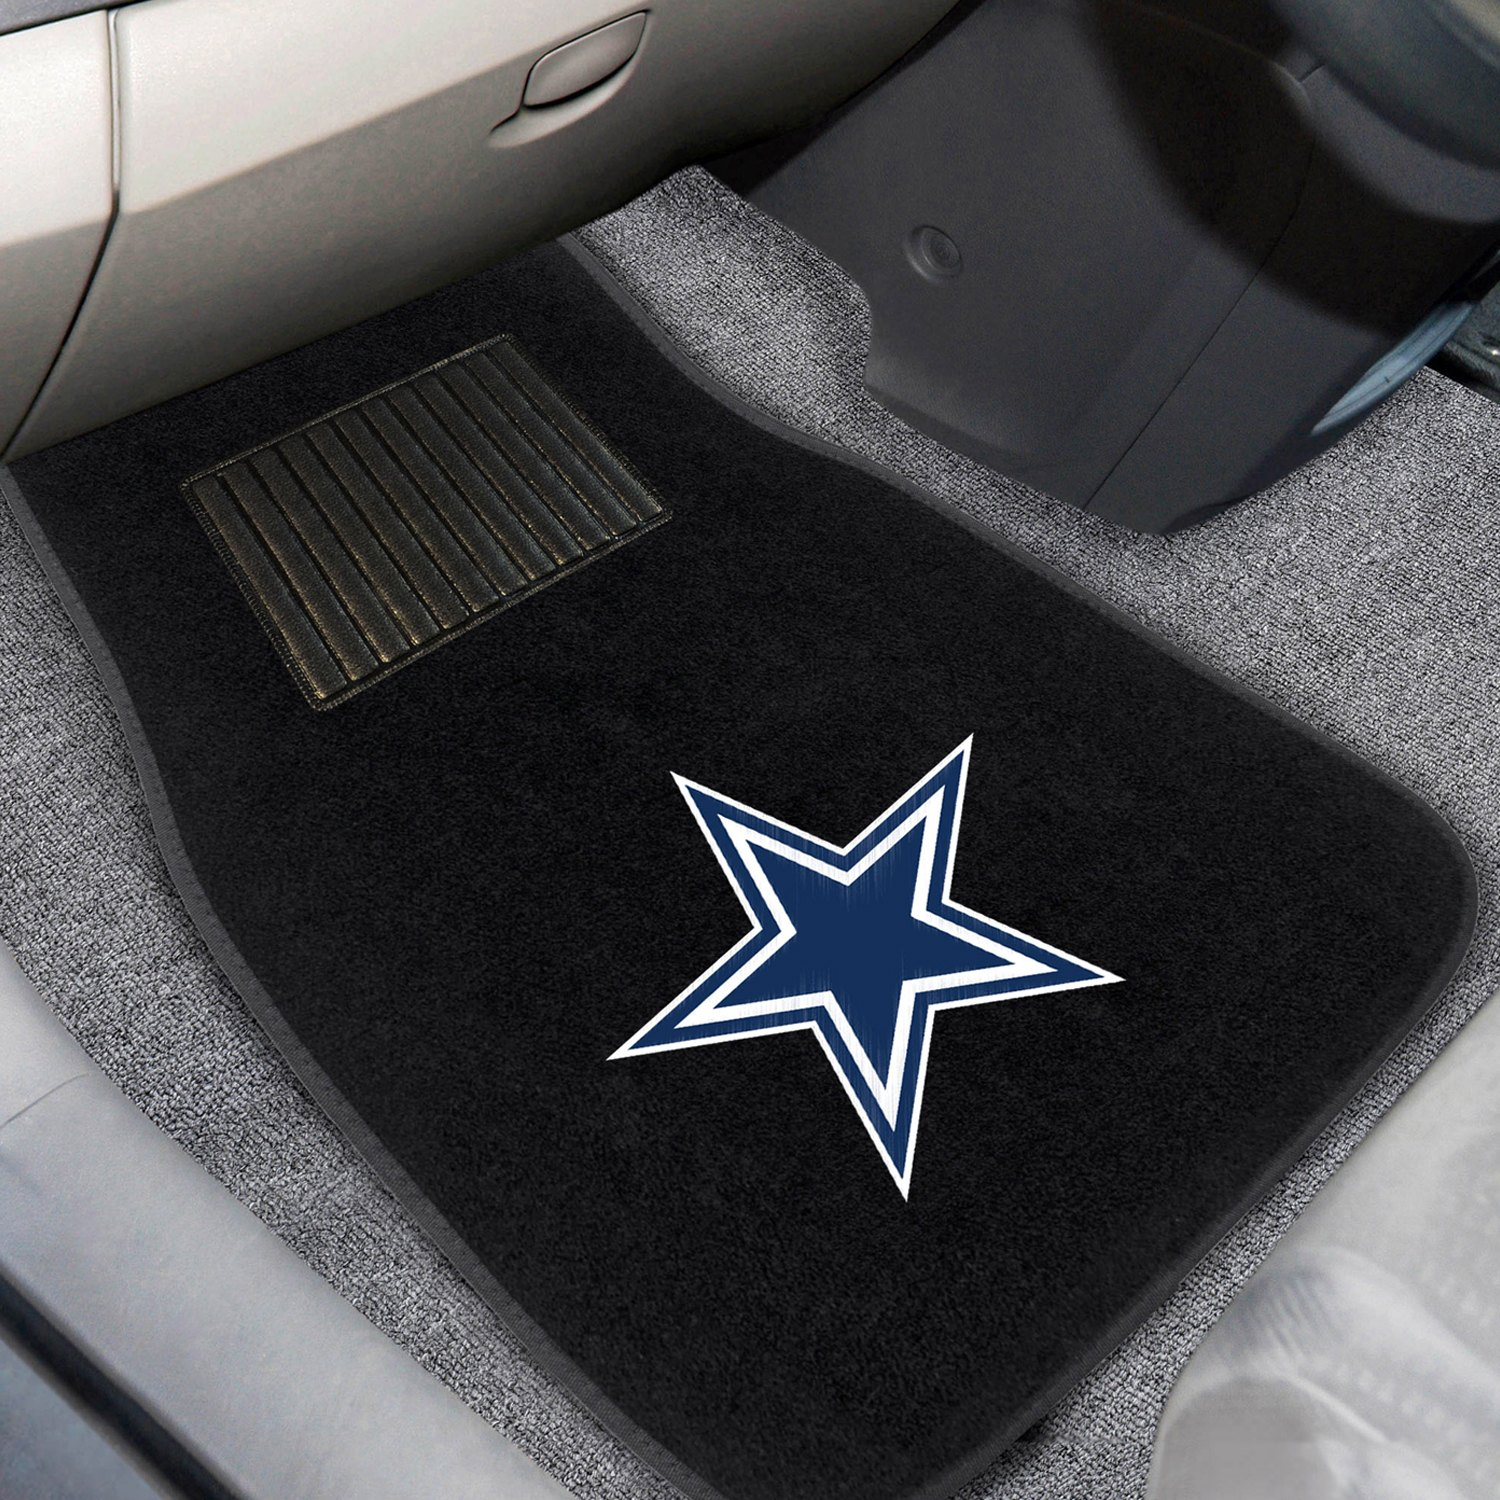 buy cheap FanMats® 10316 - Dallas Cowboys Logo on Embroidered Floor Mats for 2015 RAM 1500 TRUCK Ebay & Amazon